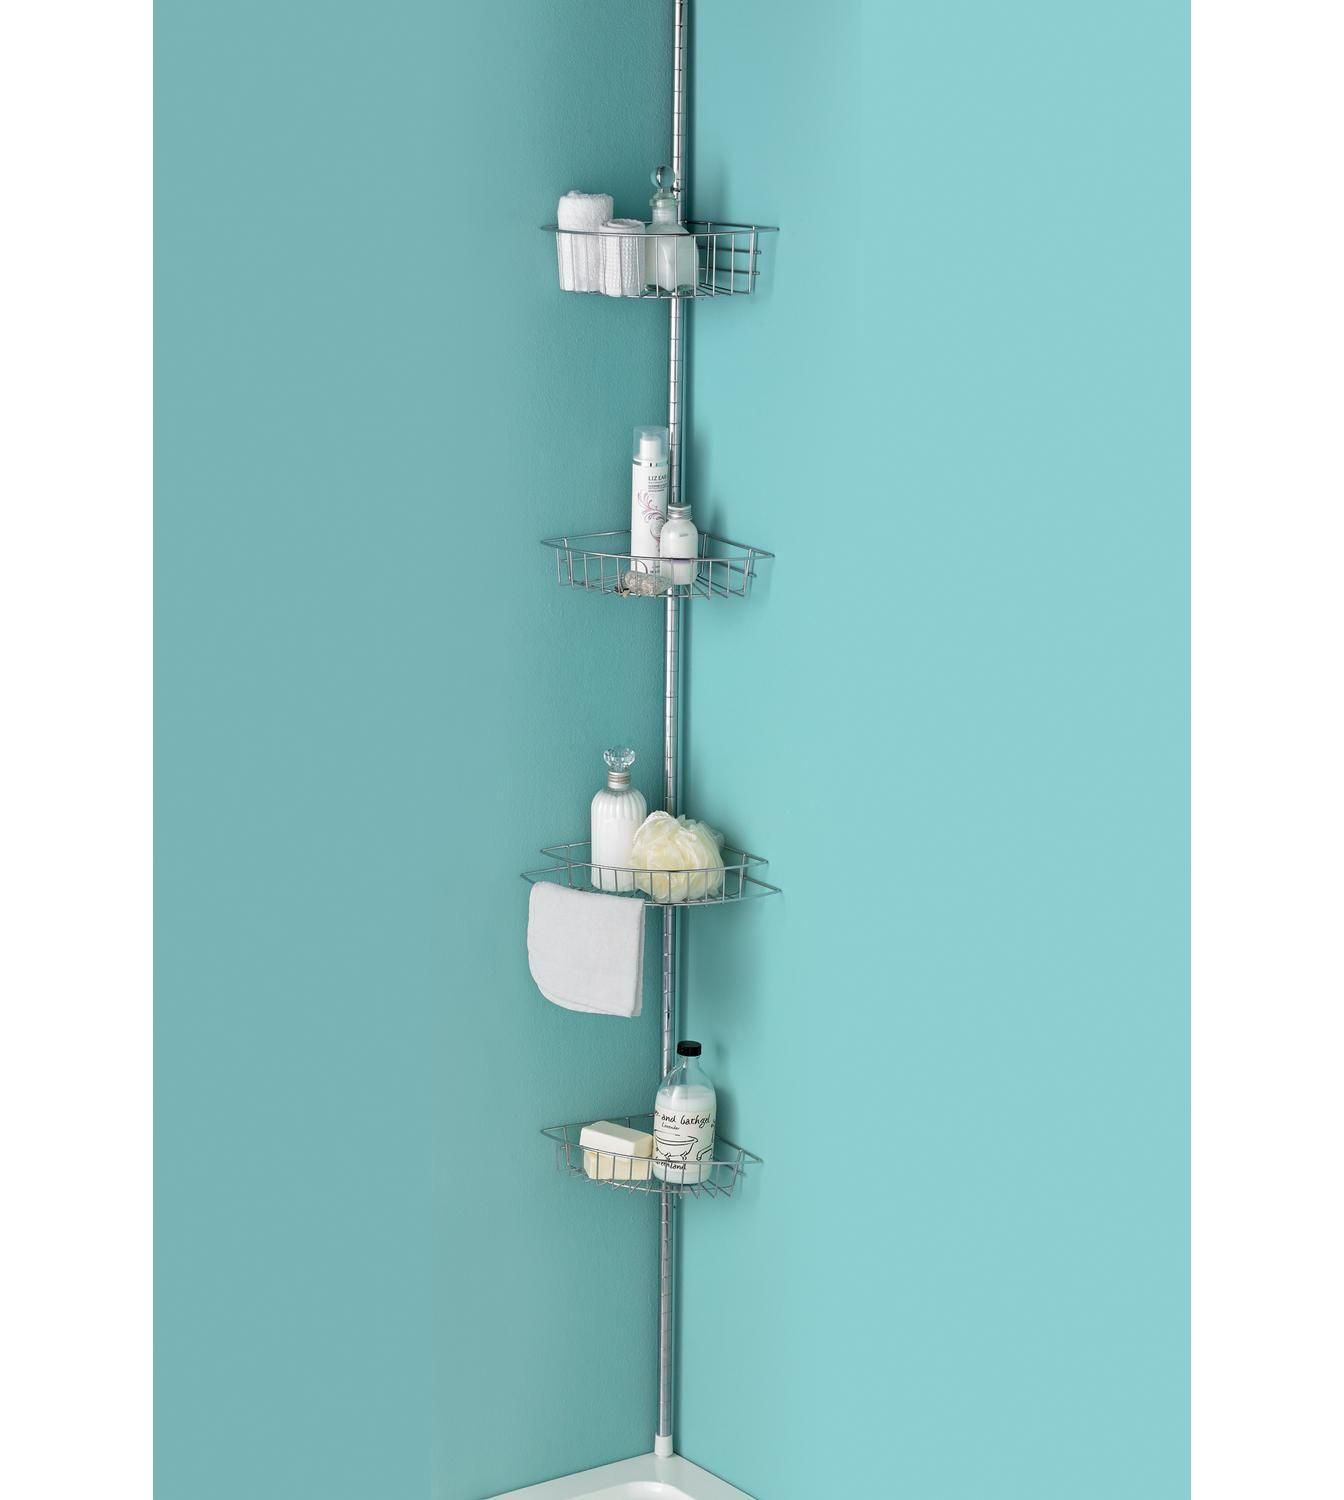 Image for 4-Tier Chrome Finish Bath/Shower Caddy from studio ...